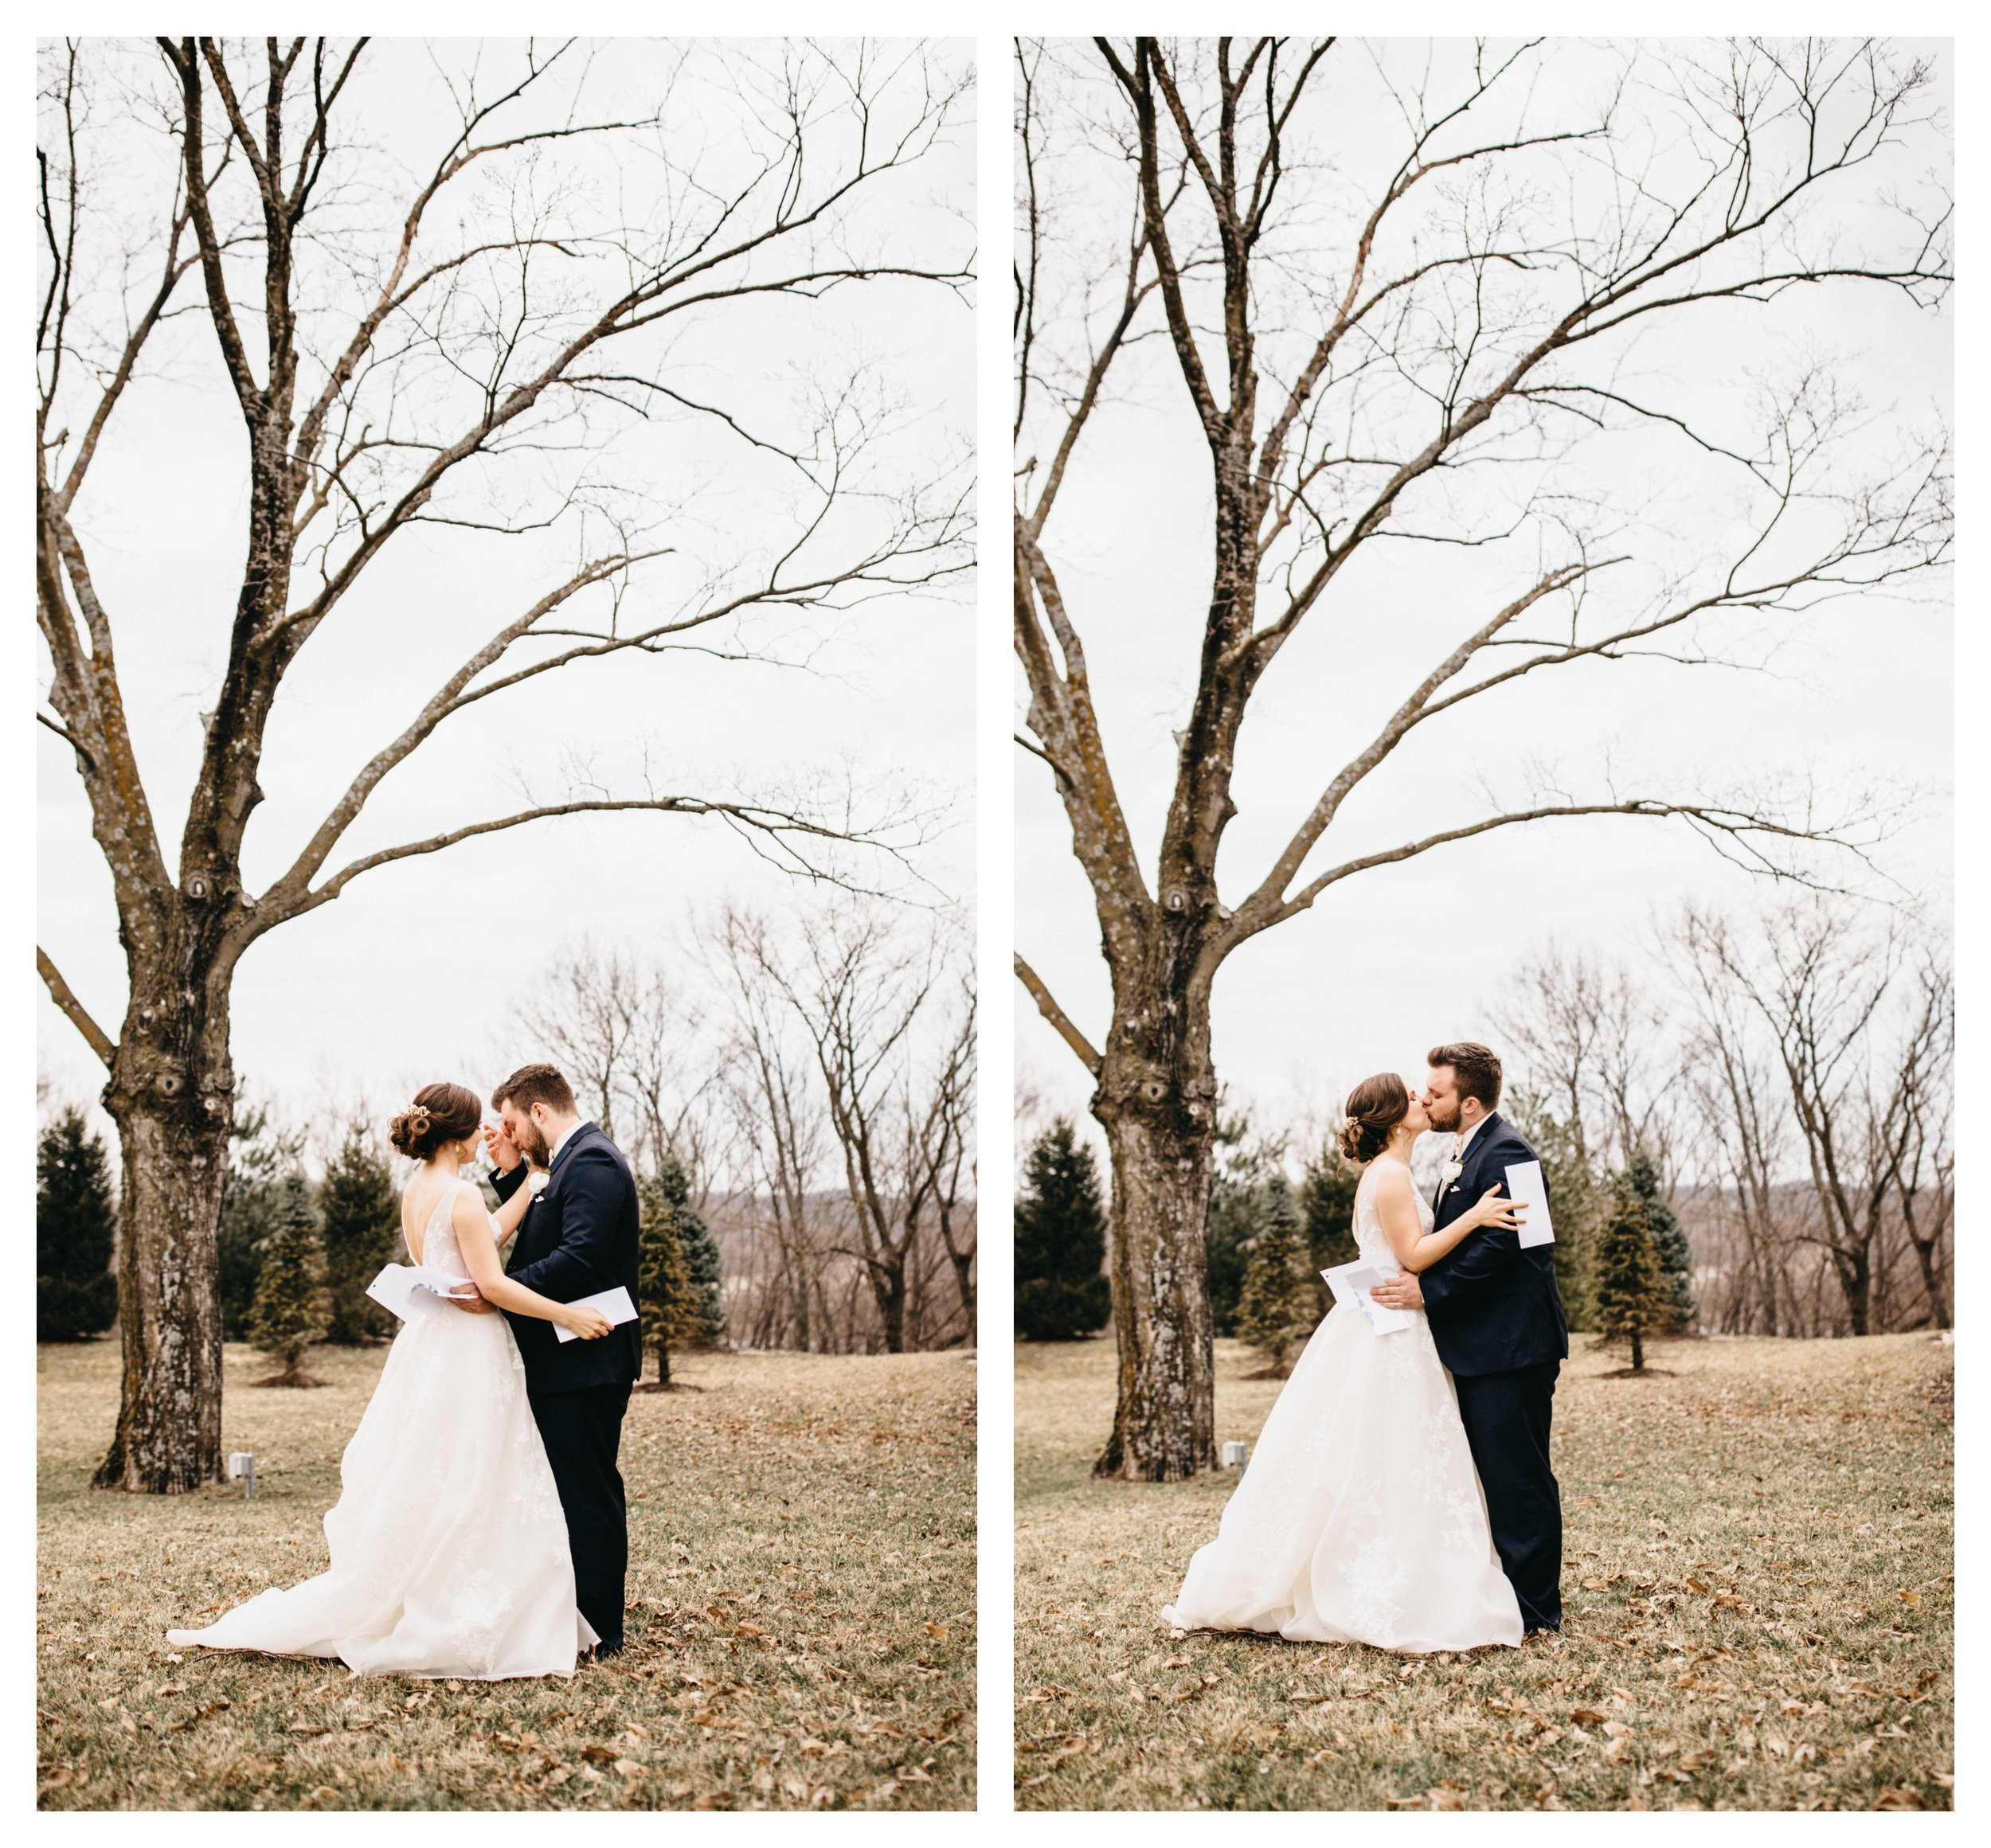 Rogg Photography Kansas City Wedding Photographer